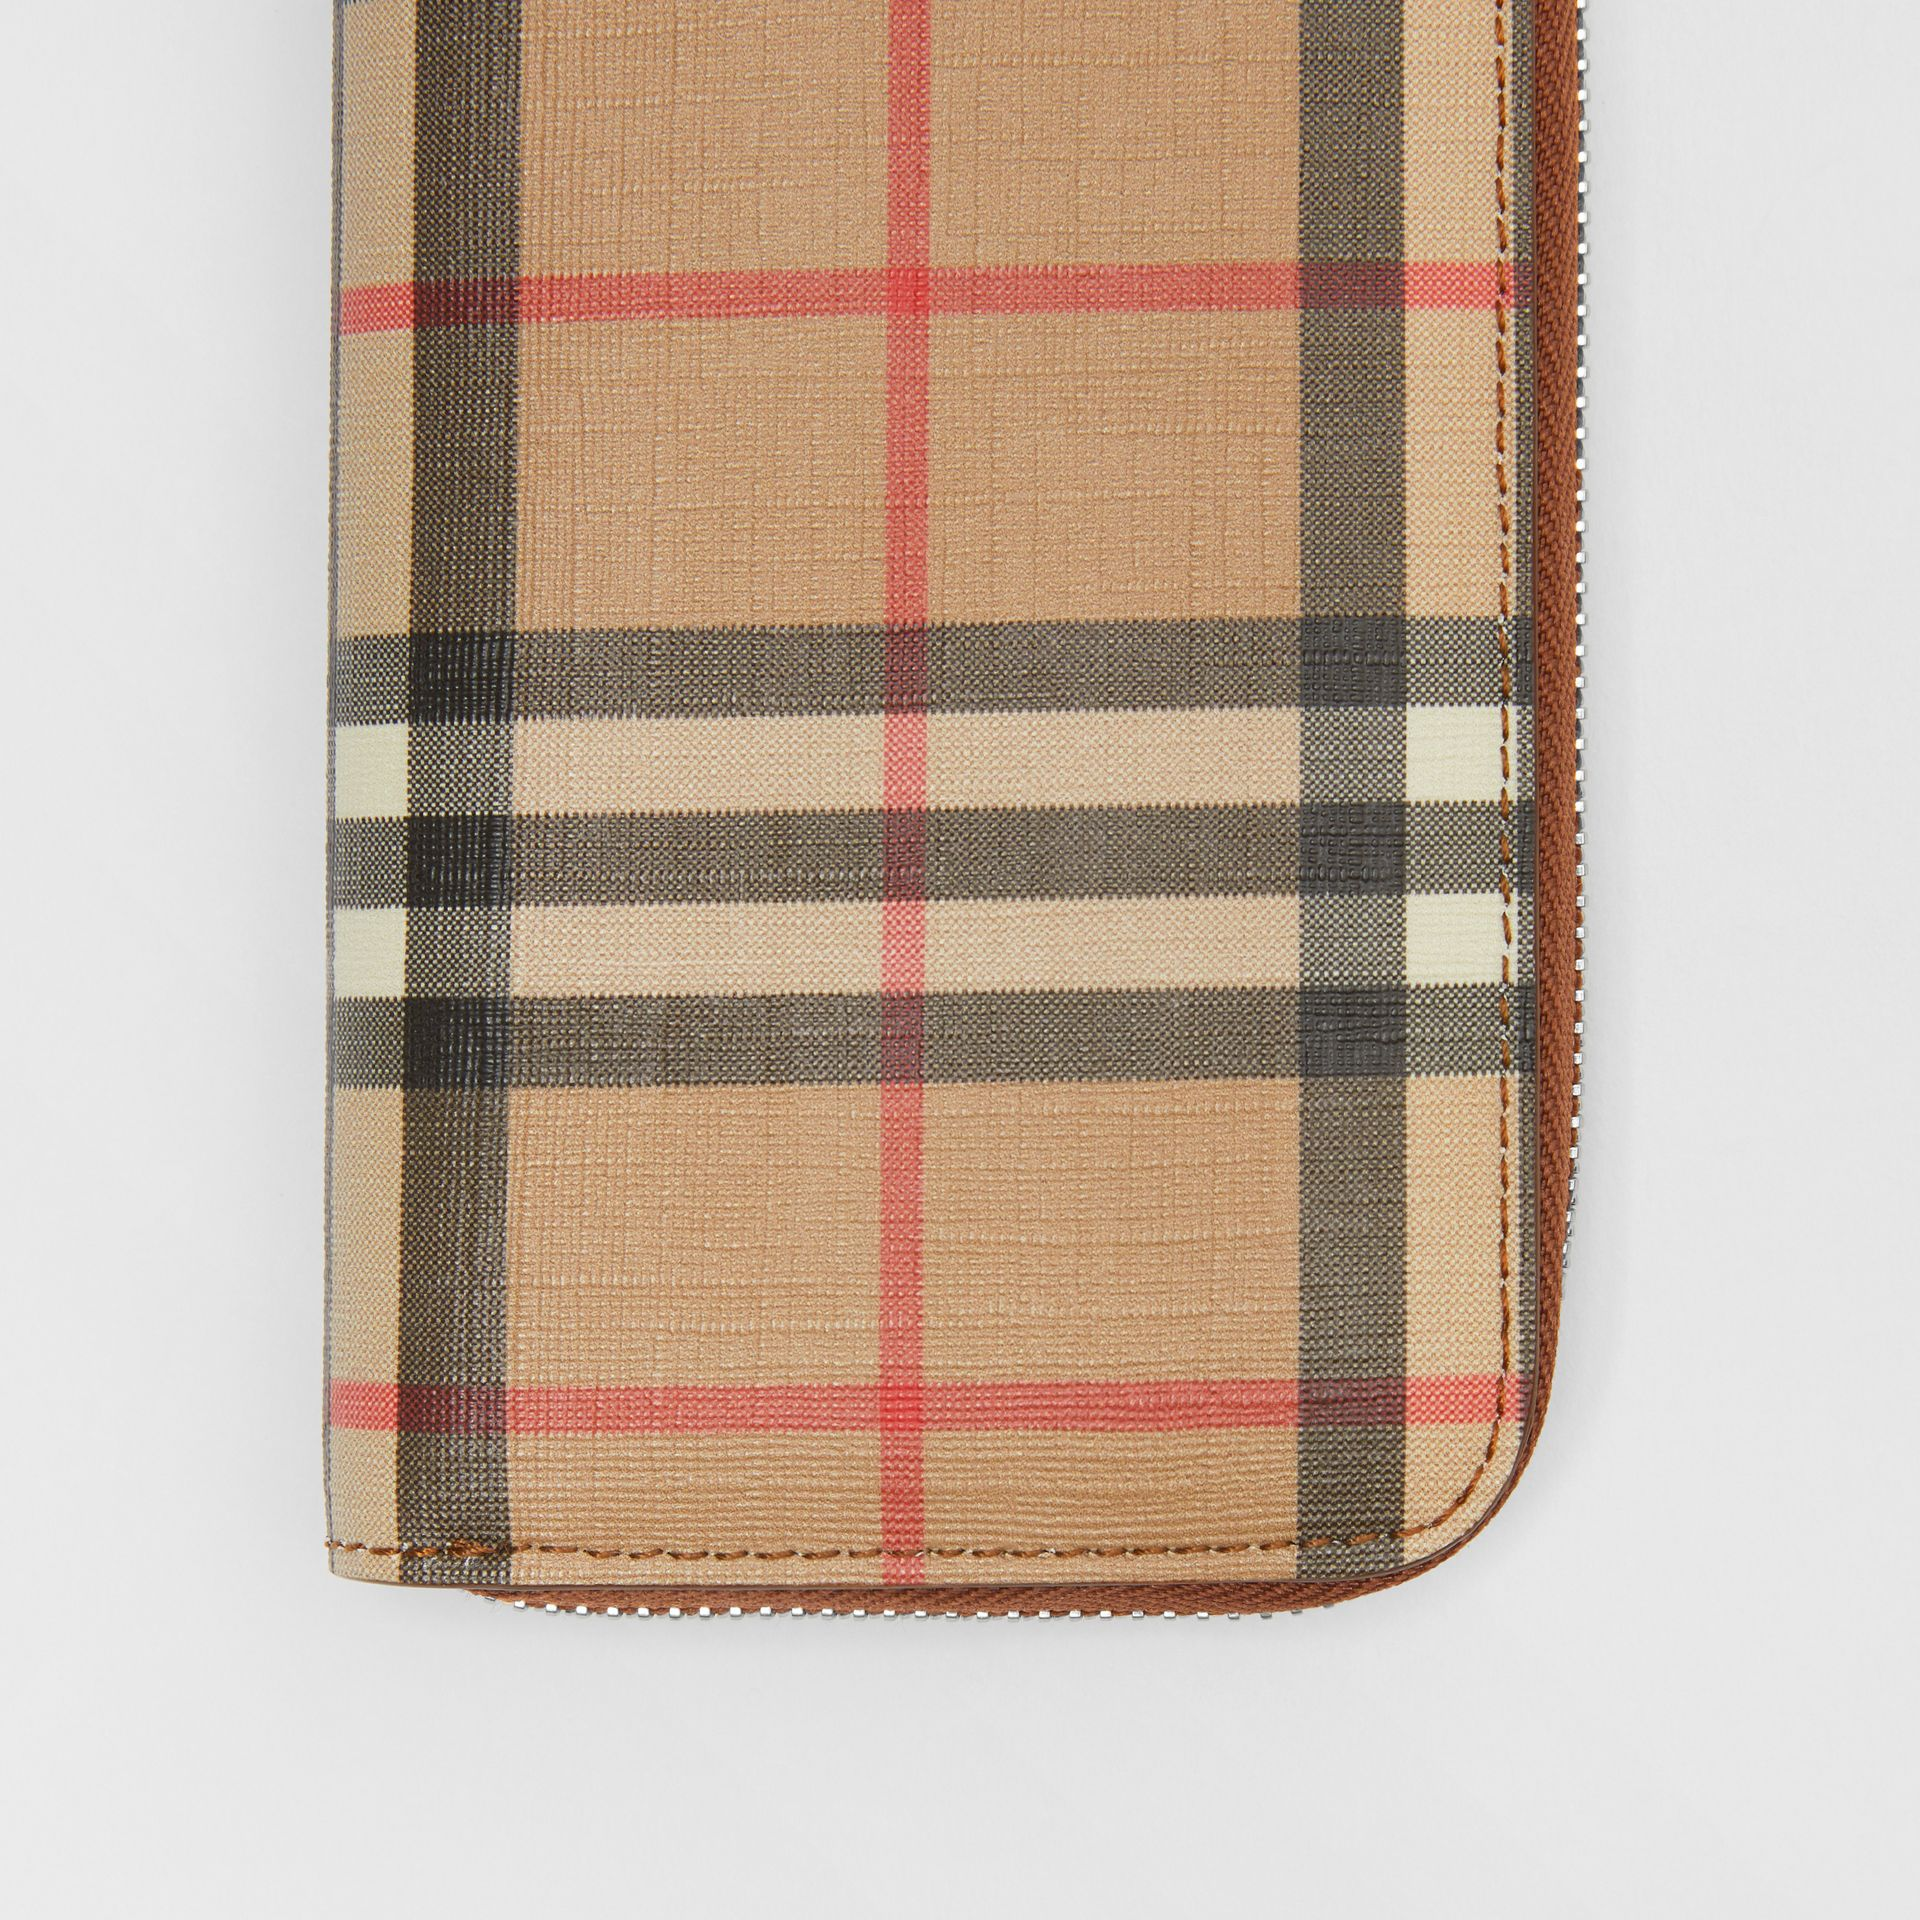 Vintage Check and Leather Ziparound Wallet in Malt Brown - Women | Burberry - gallery image 1